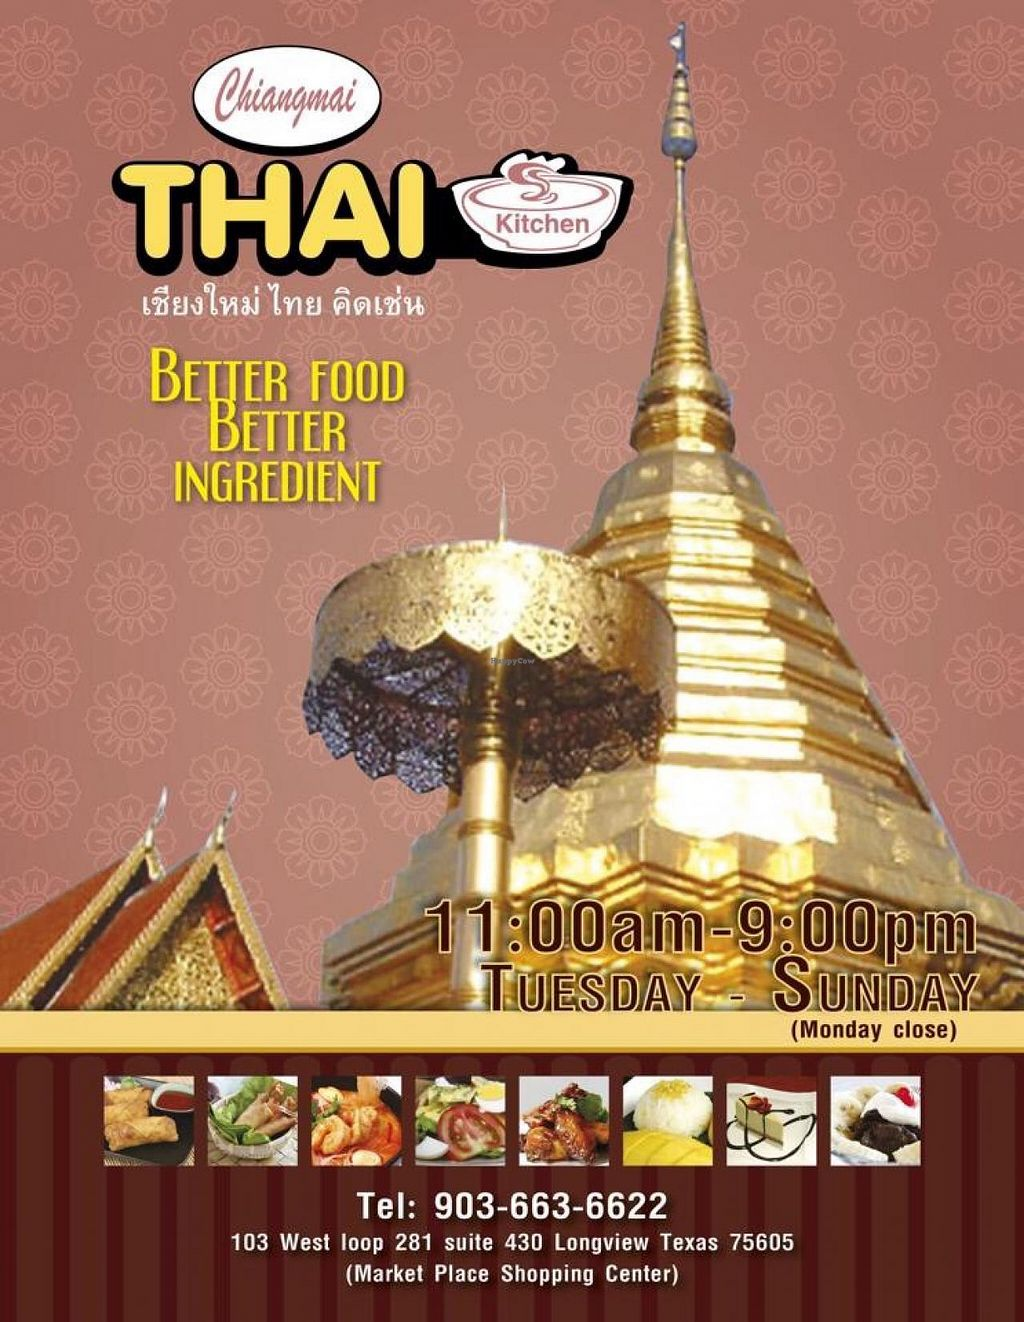 """Photo of REMOVED: Chiangmai Thai Kitchen  by <a href=""""/members/profile/JeedSripakdee"""">JeedSripakdee</a> <br/>Good Thai food <br/> June 1, 2015  - <a href='/contact/abuse/image/58954/104456'>Report</a>"""